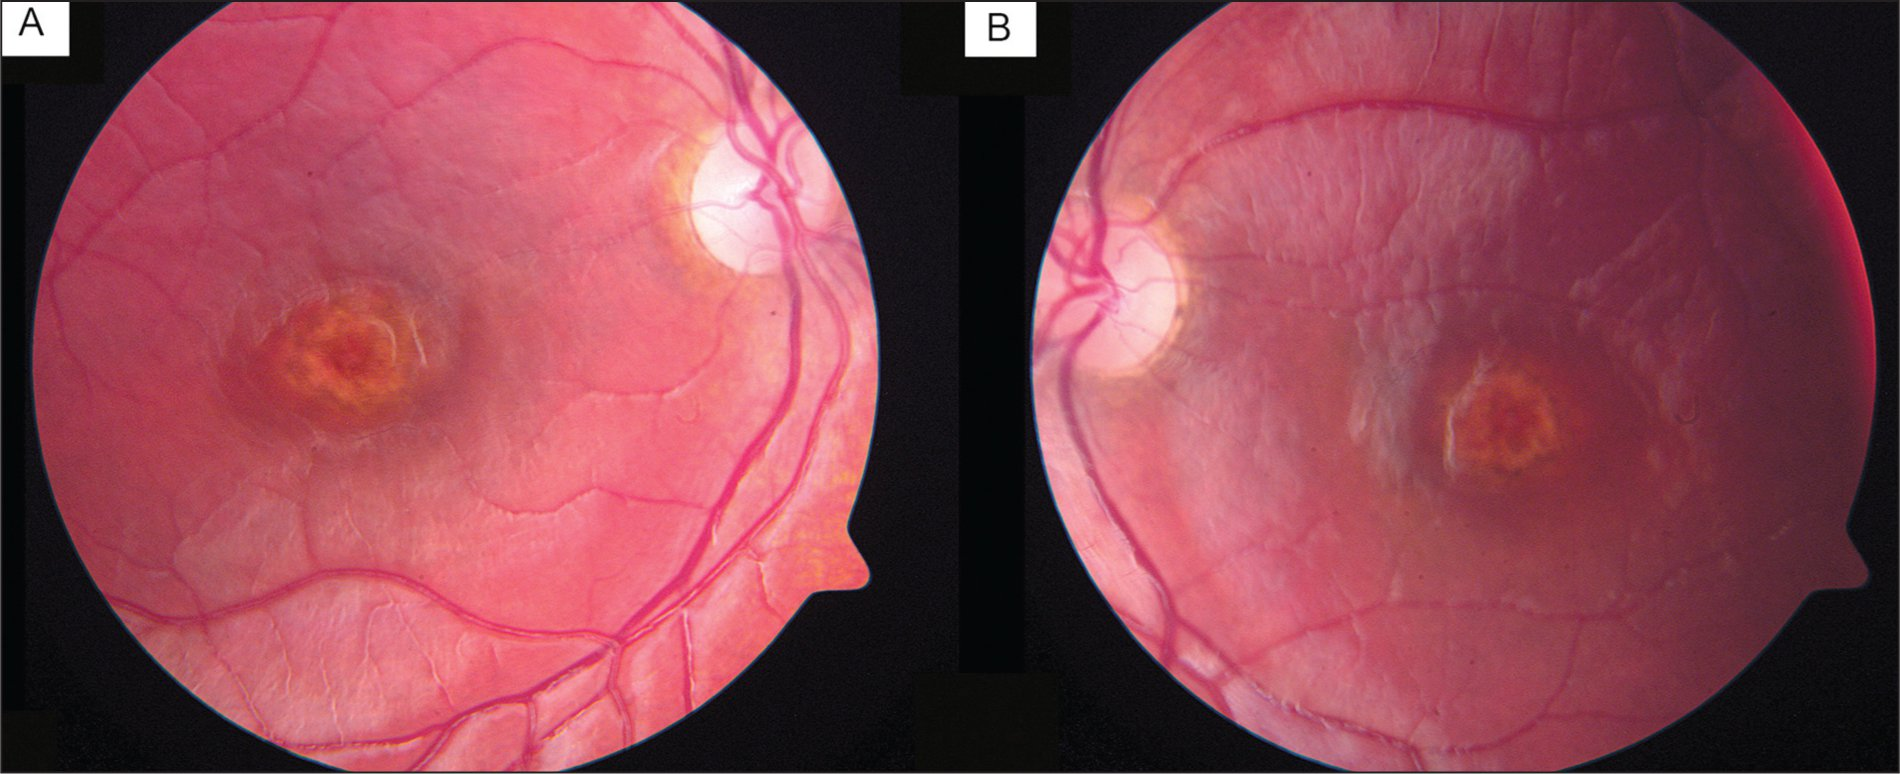 Red-Free Retinal Photographs Demonstrating Cobalamin C–Related Maculopathy. Right (A) and Left (B) Maculae Show Rings of Irregular Yellow Discoloration in a Bull's Eye Pattern Around the Fovea.